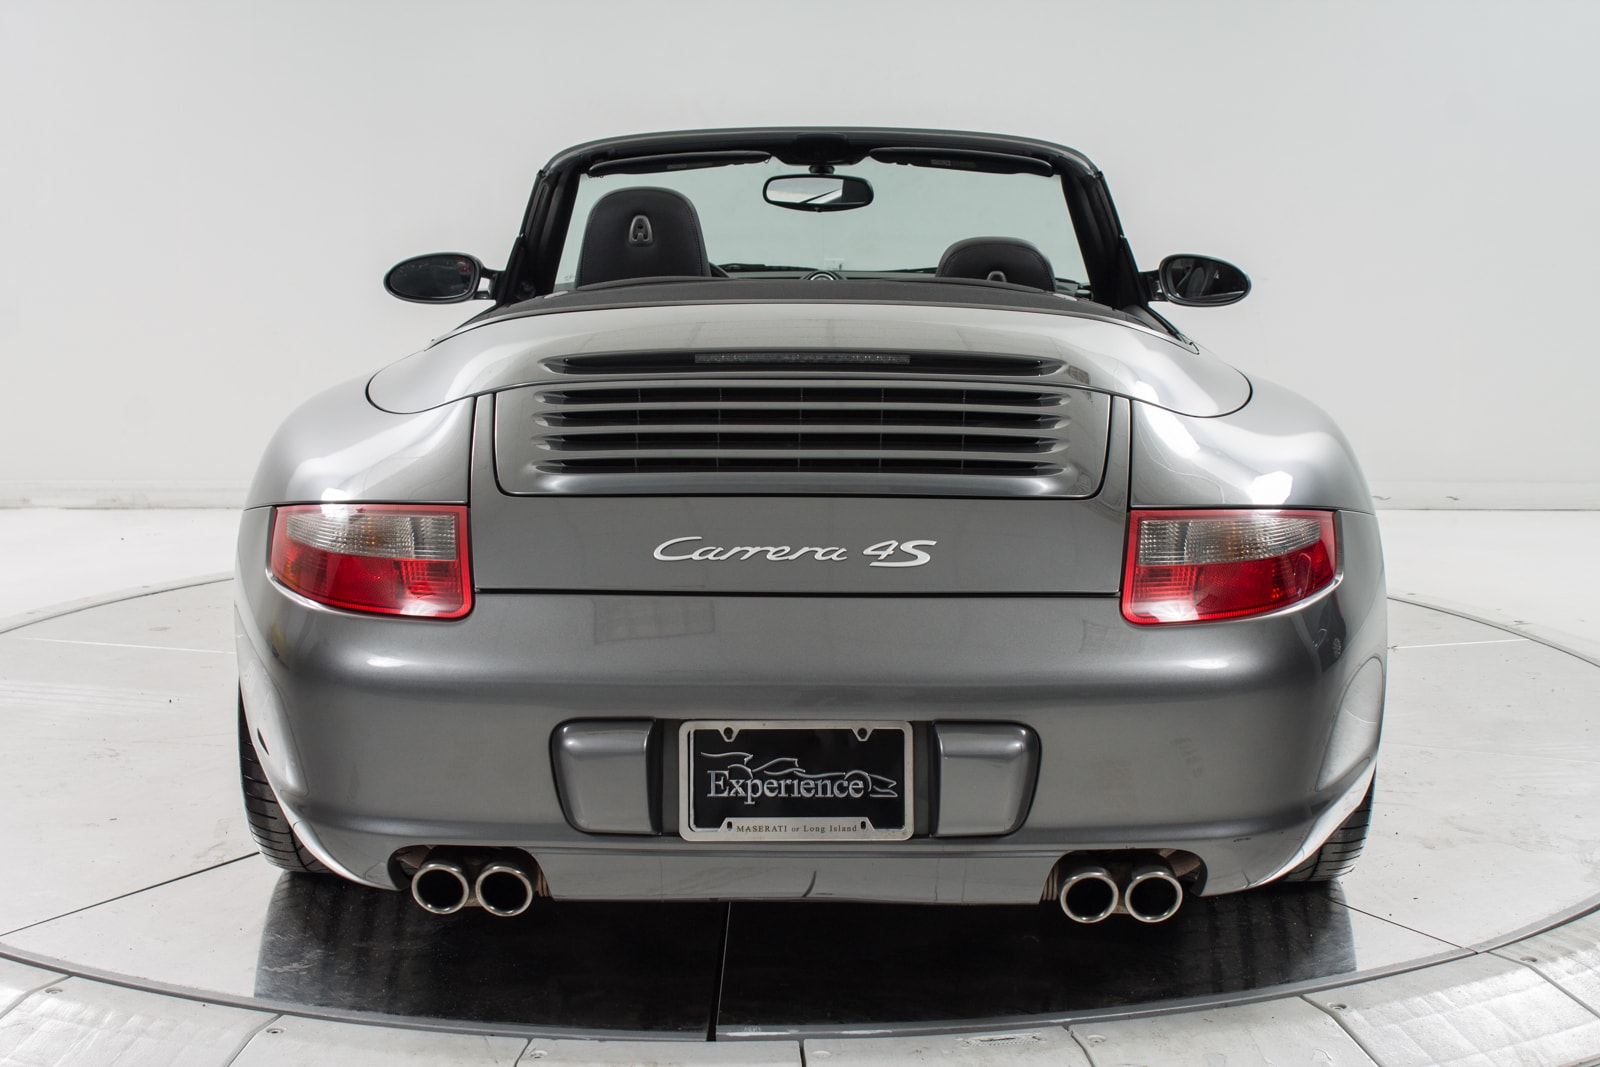 Used 2008 Porsche 911 Carrera 4s Cabriolet For Sale